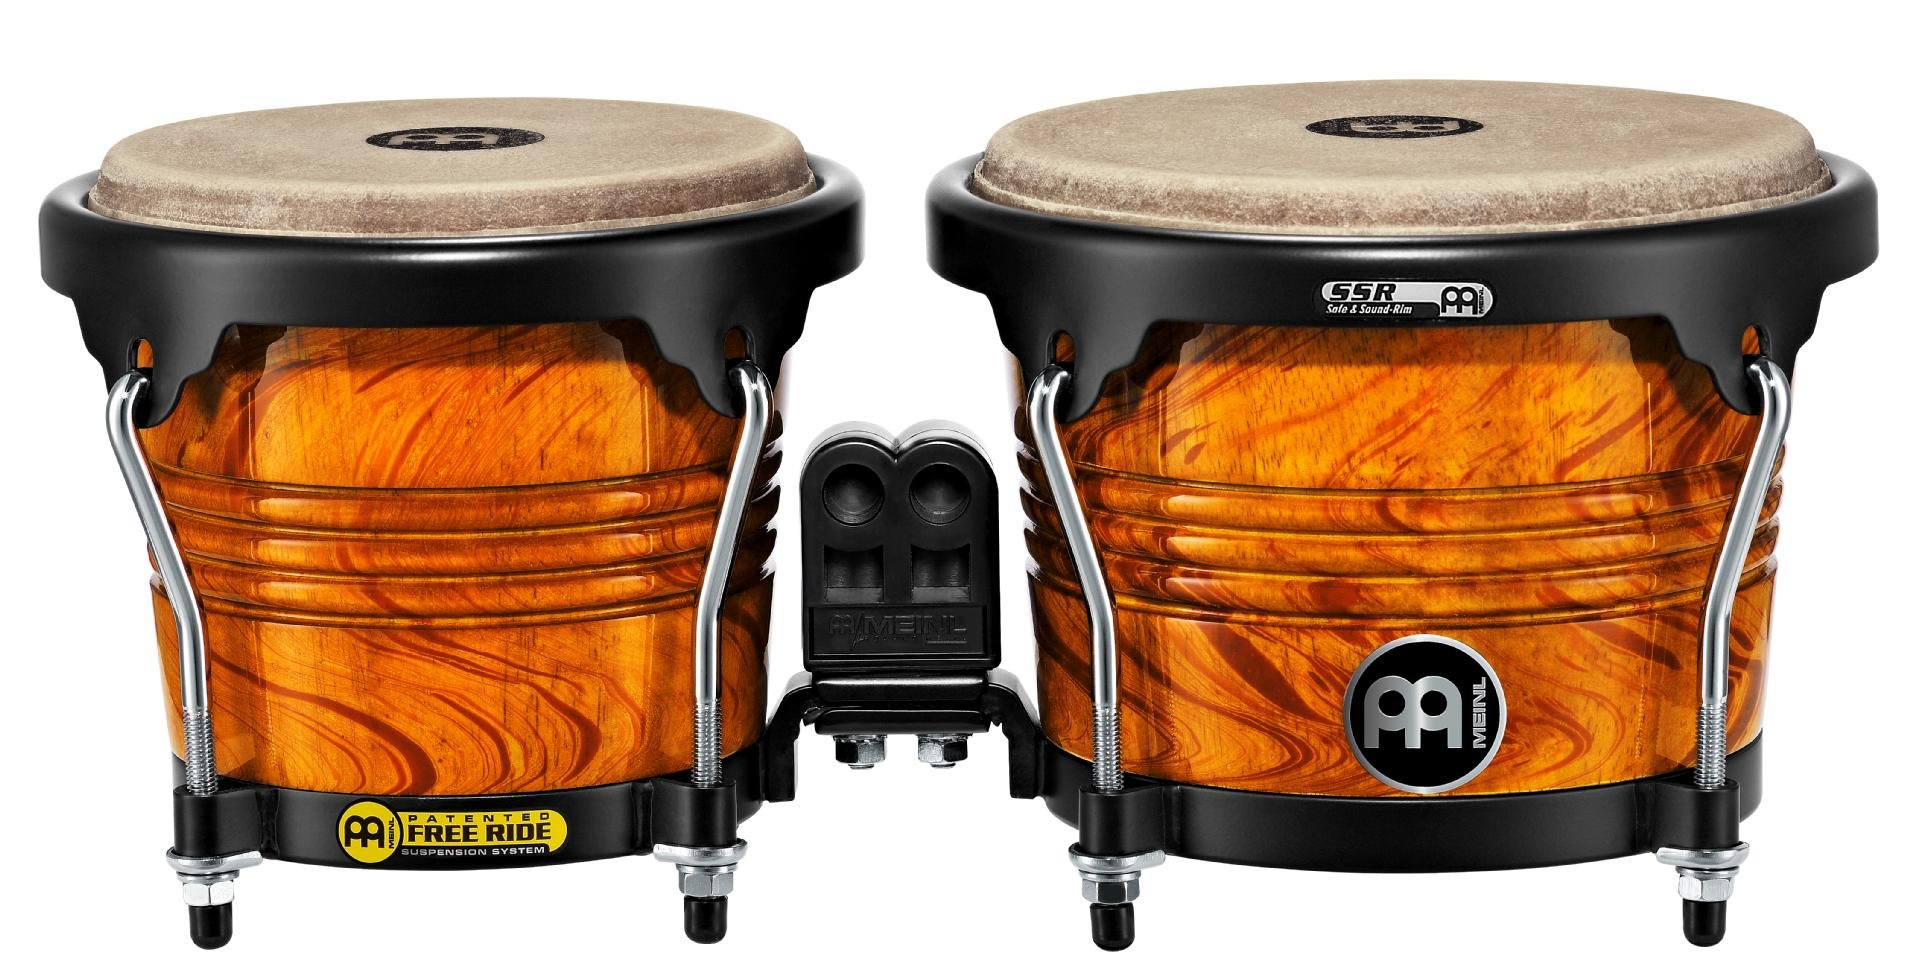 Meinl Percussion FWB190AF Free Ride Series Wood Bongos, Amber Flame Finish by Meinl Percussion